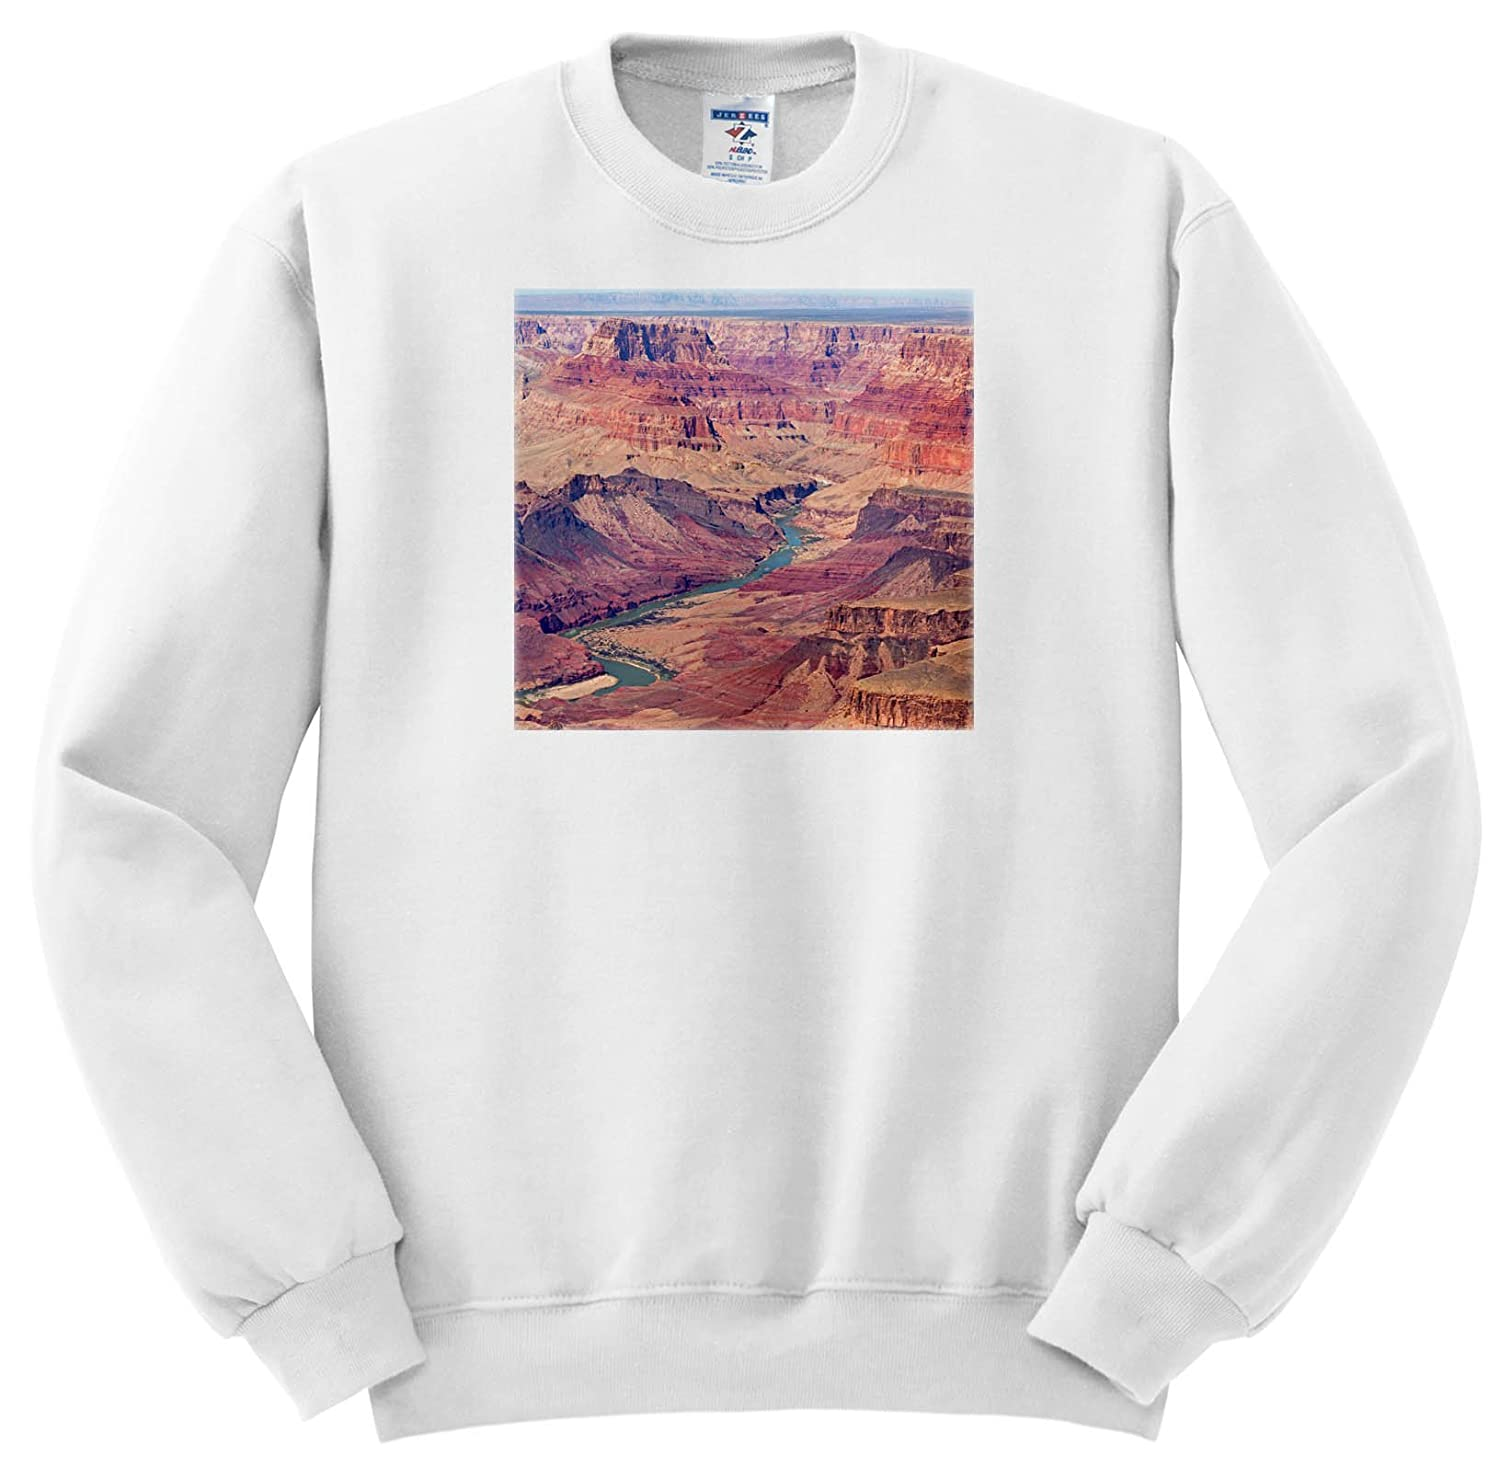 3dRose Danita Delimont - Canyons - Arizona, Grand Canyon National Park, South Rim, View From Lipan Point - Sweatshirts ss_258707